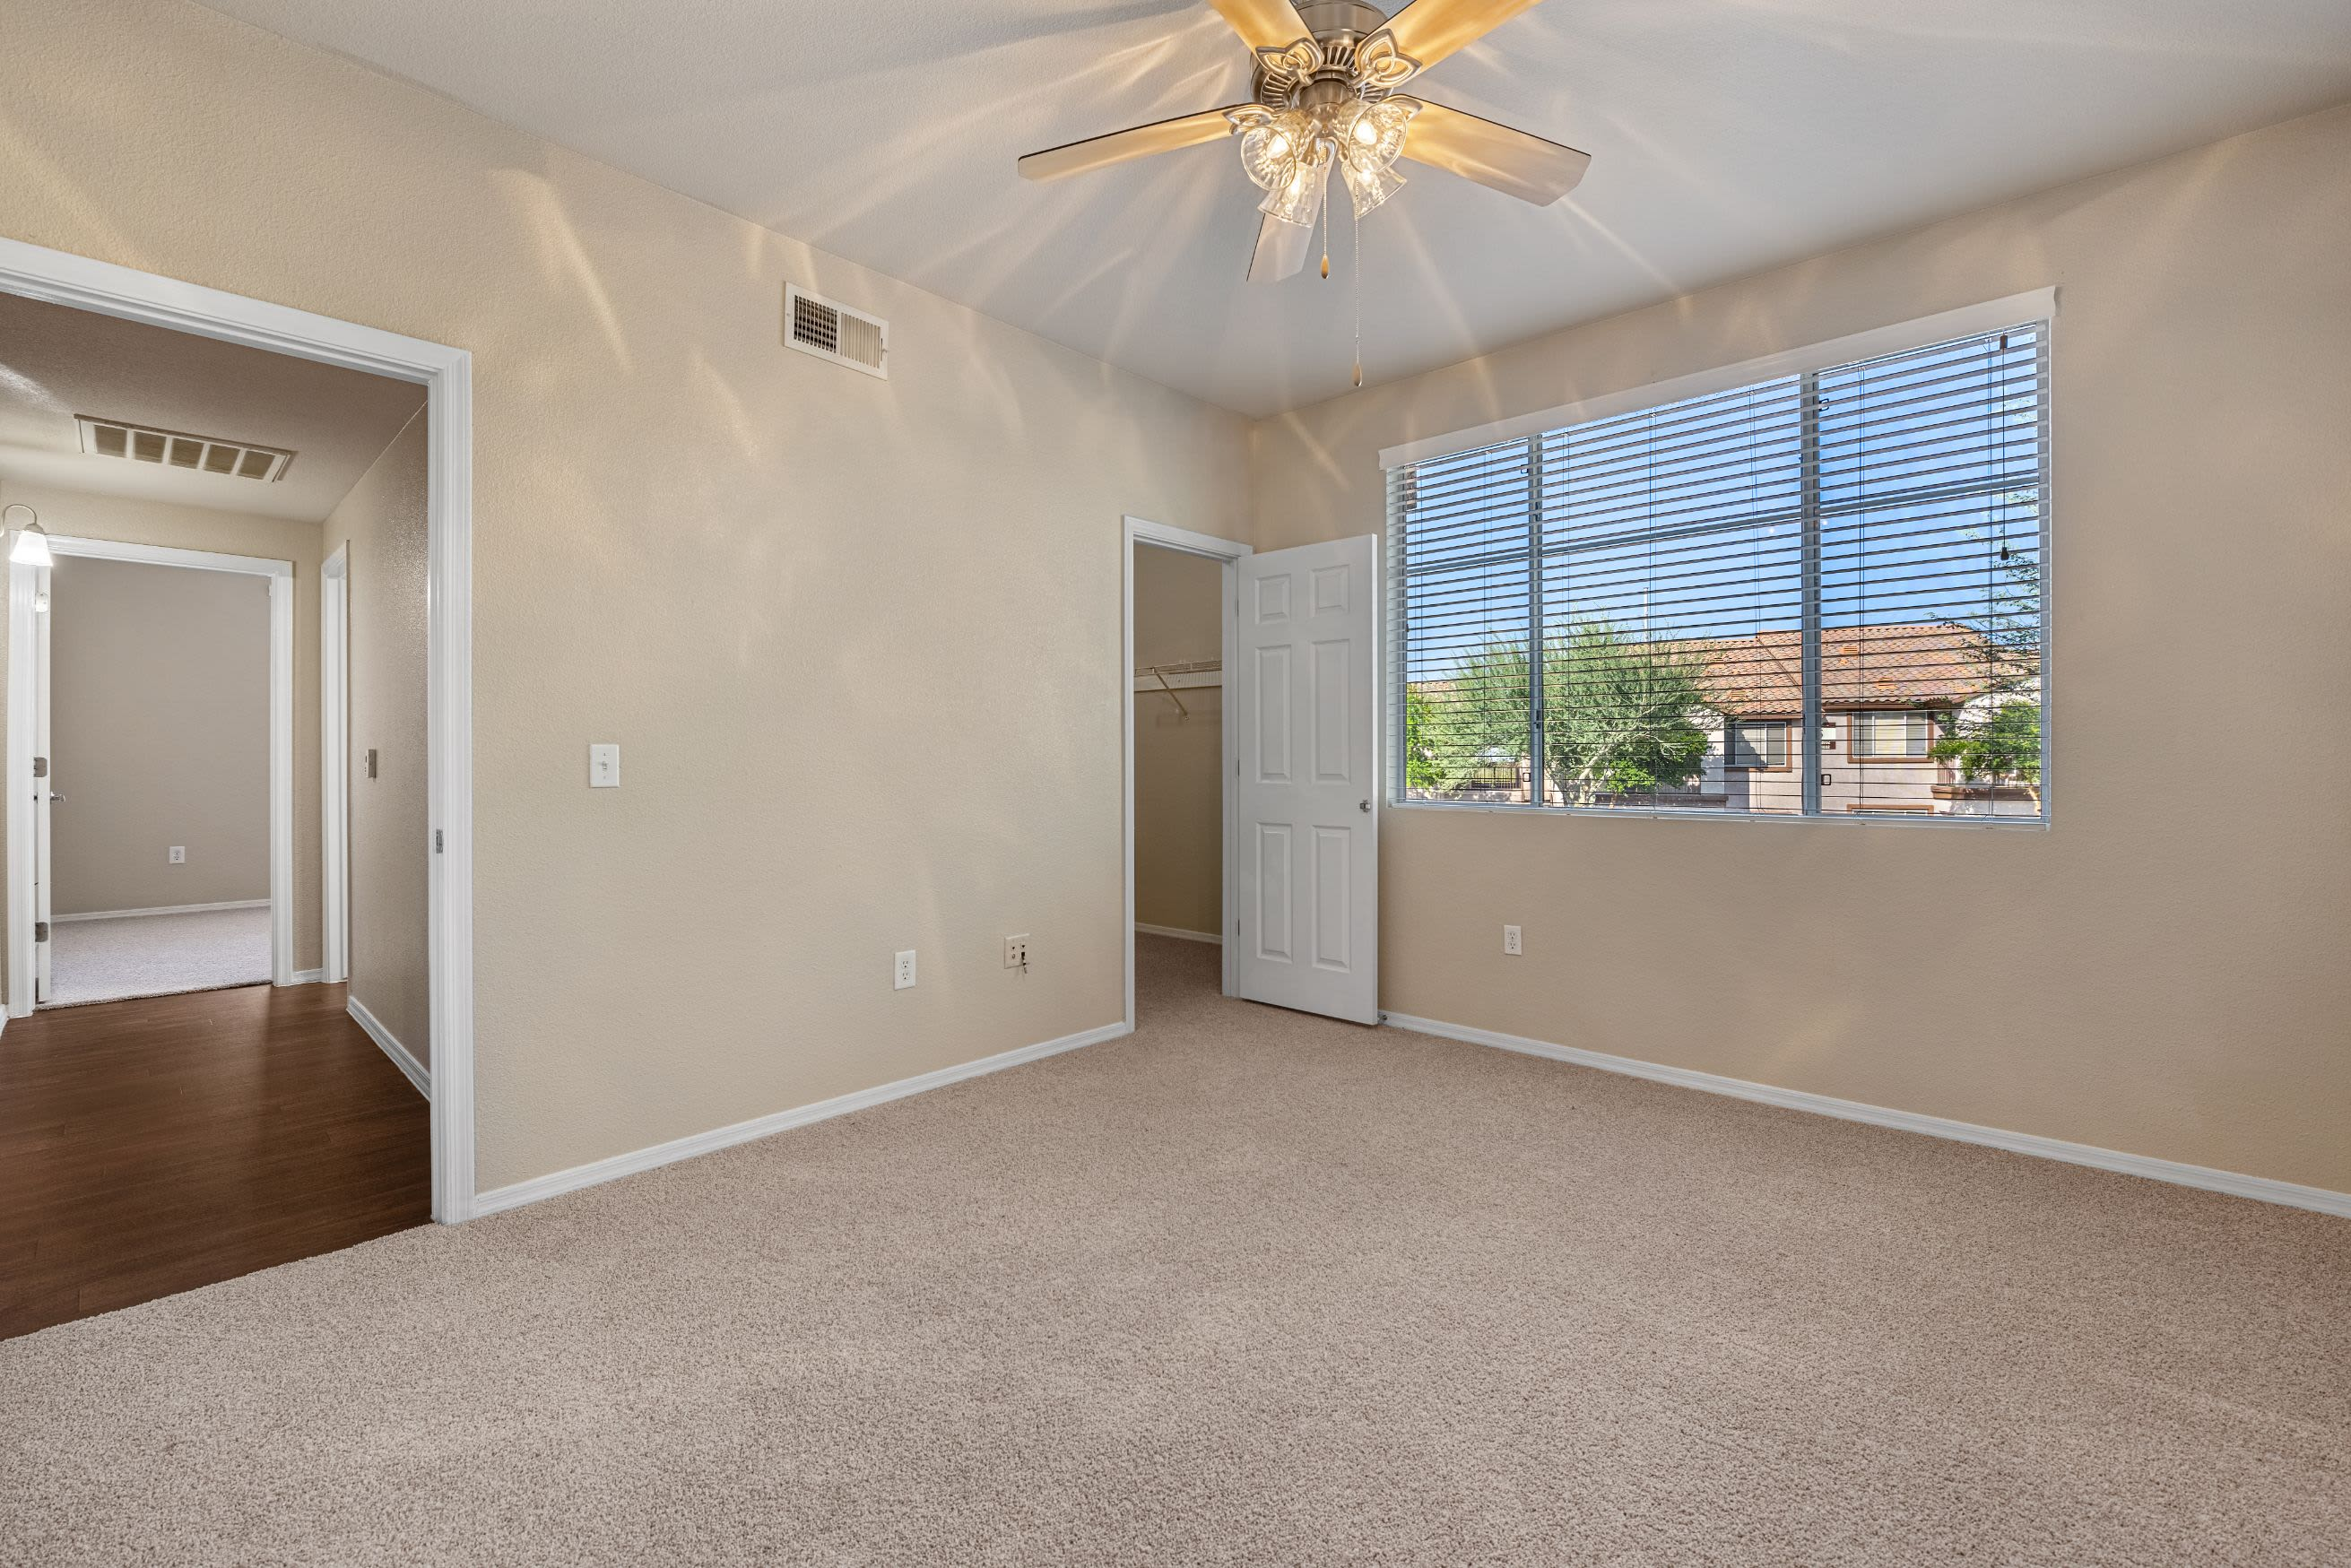 Bedroom with carpet and a ceiling fan at Azure Creek in Cave Creek, Arizona